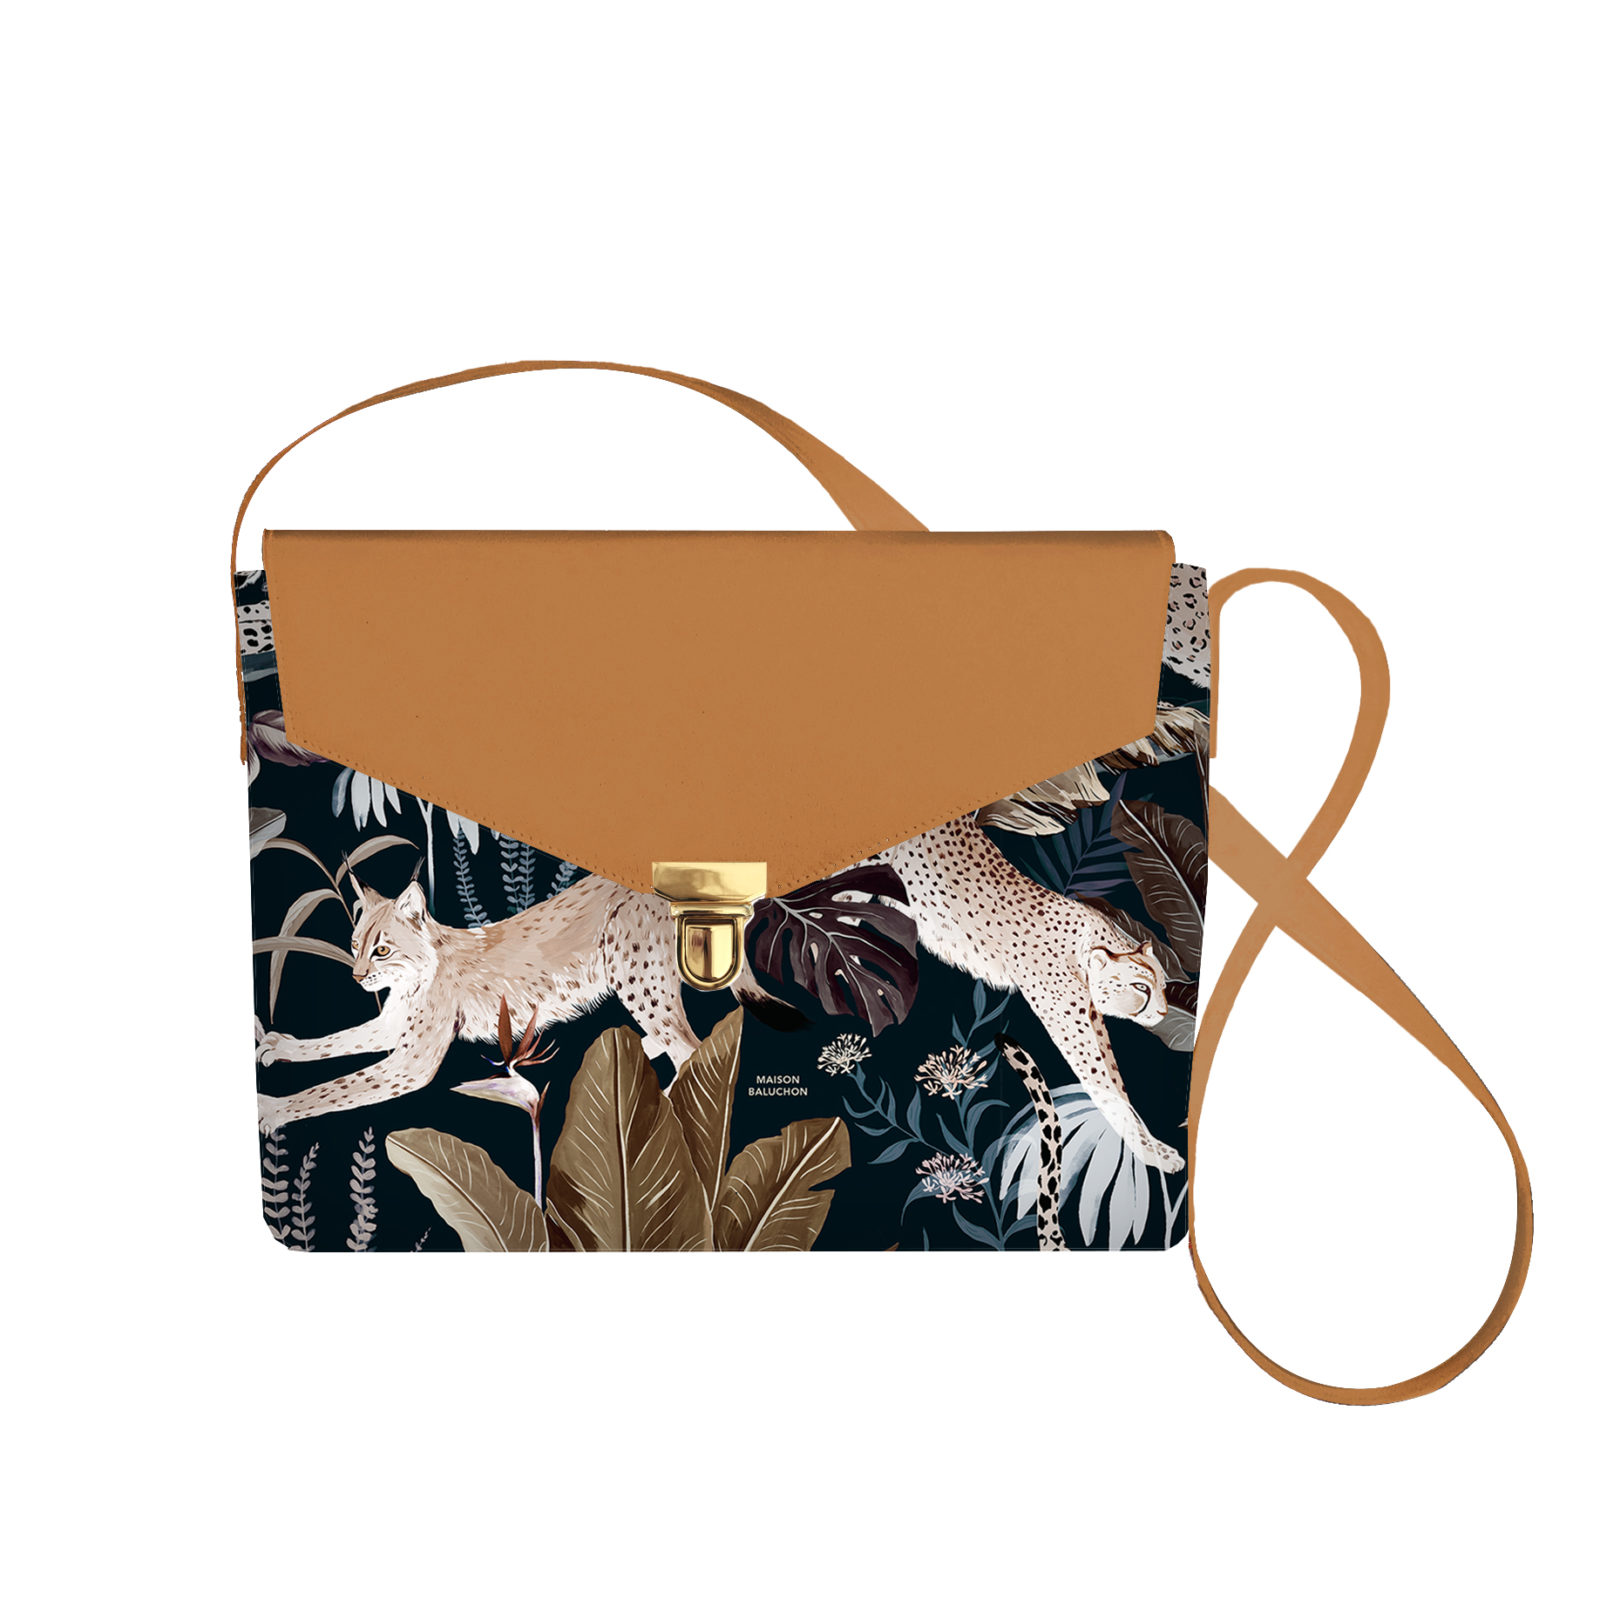 Sacoche Jungle N°22 - Cuir Camel